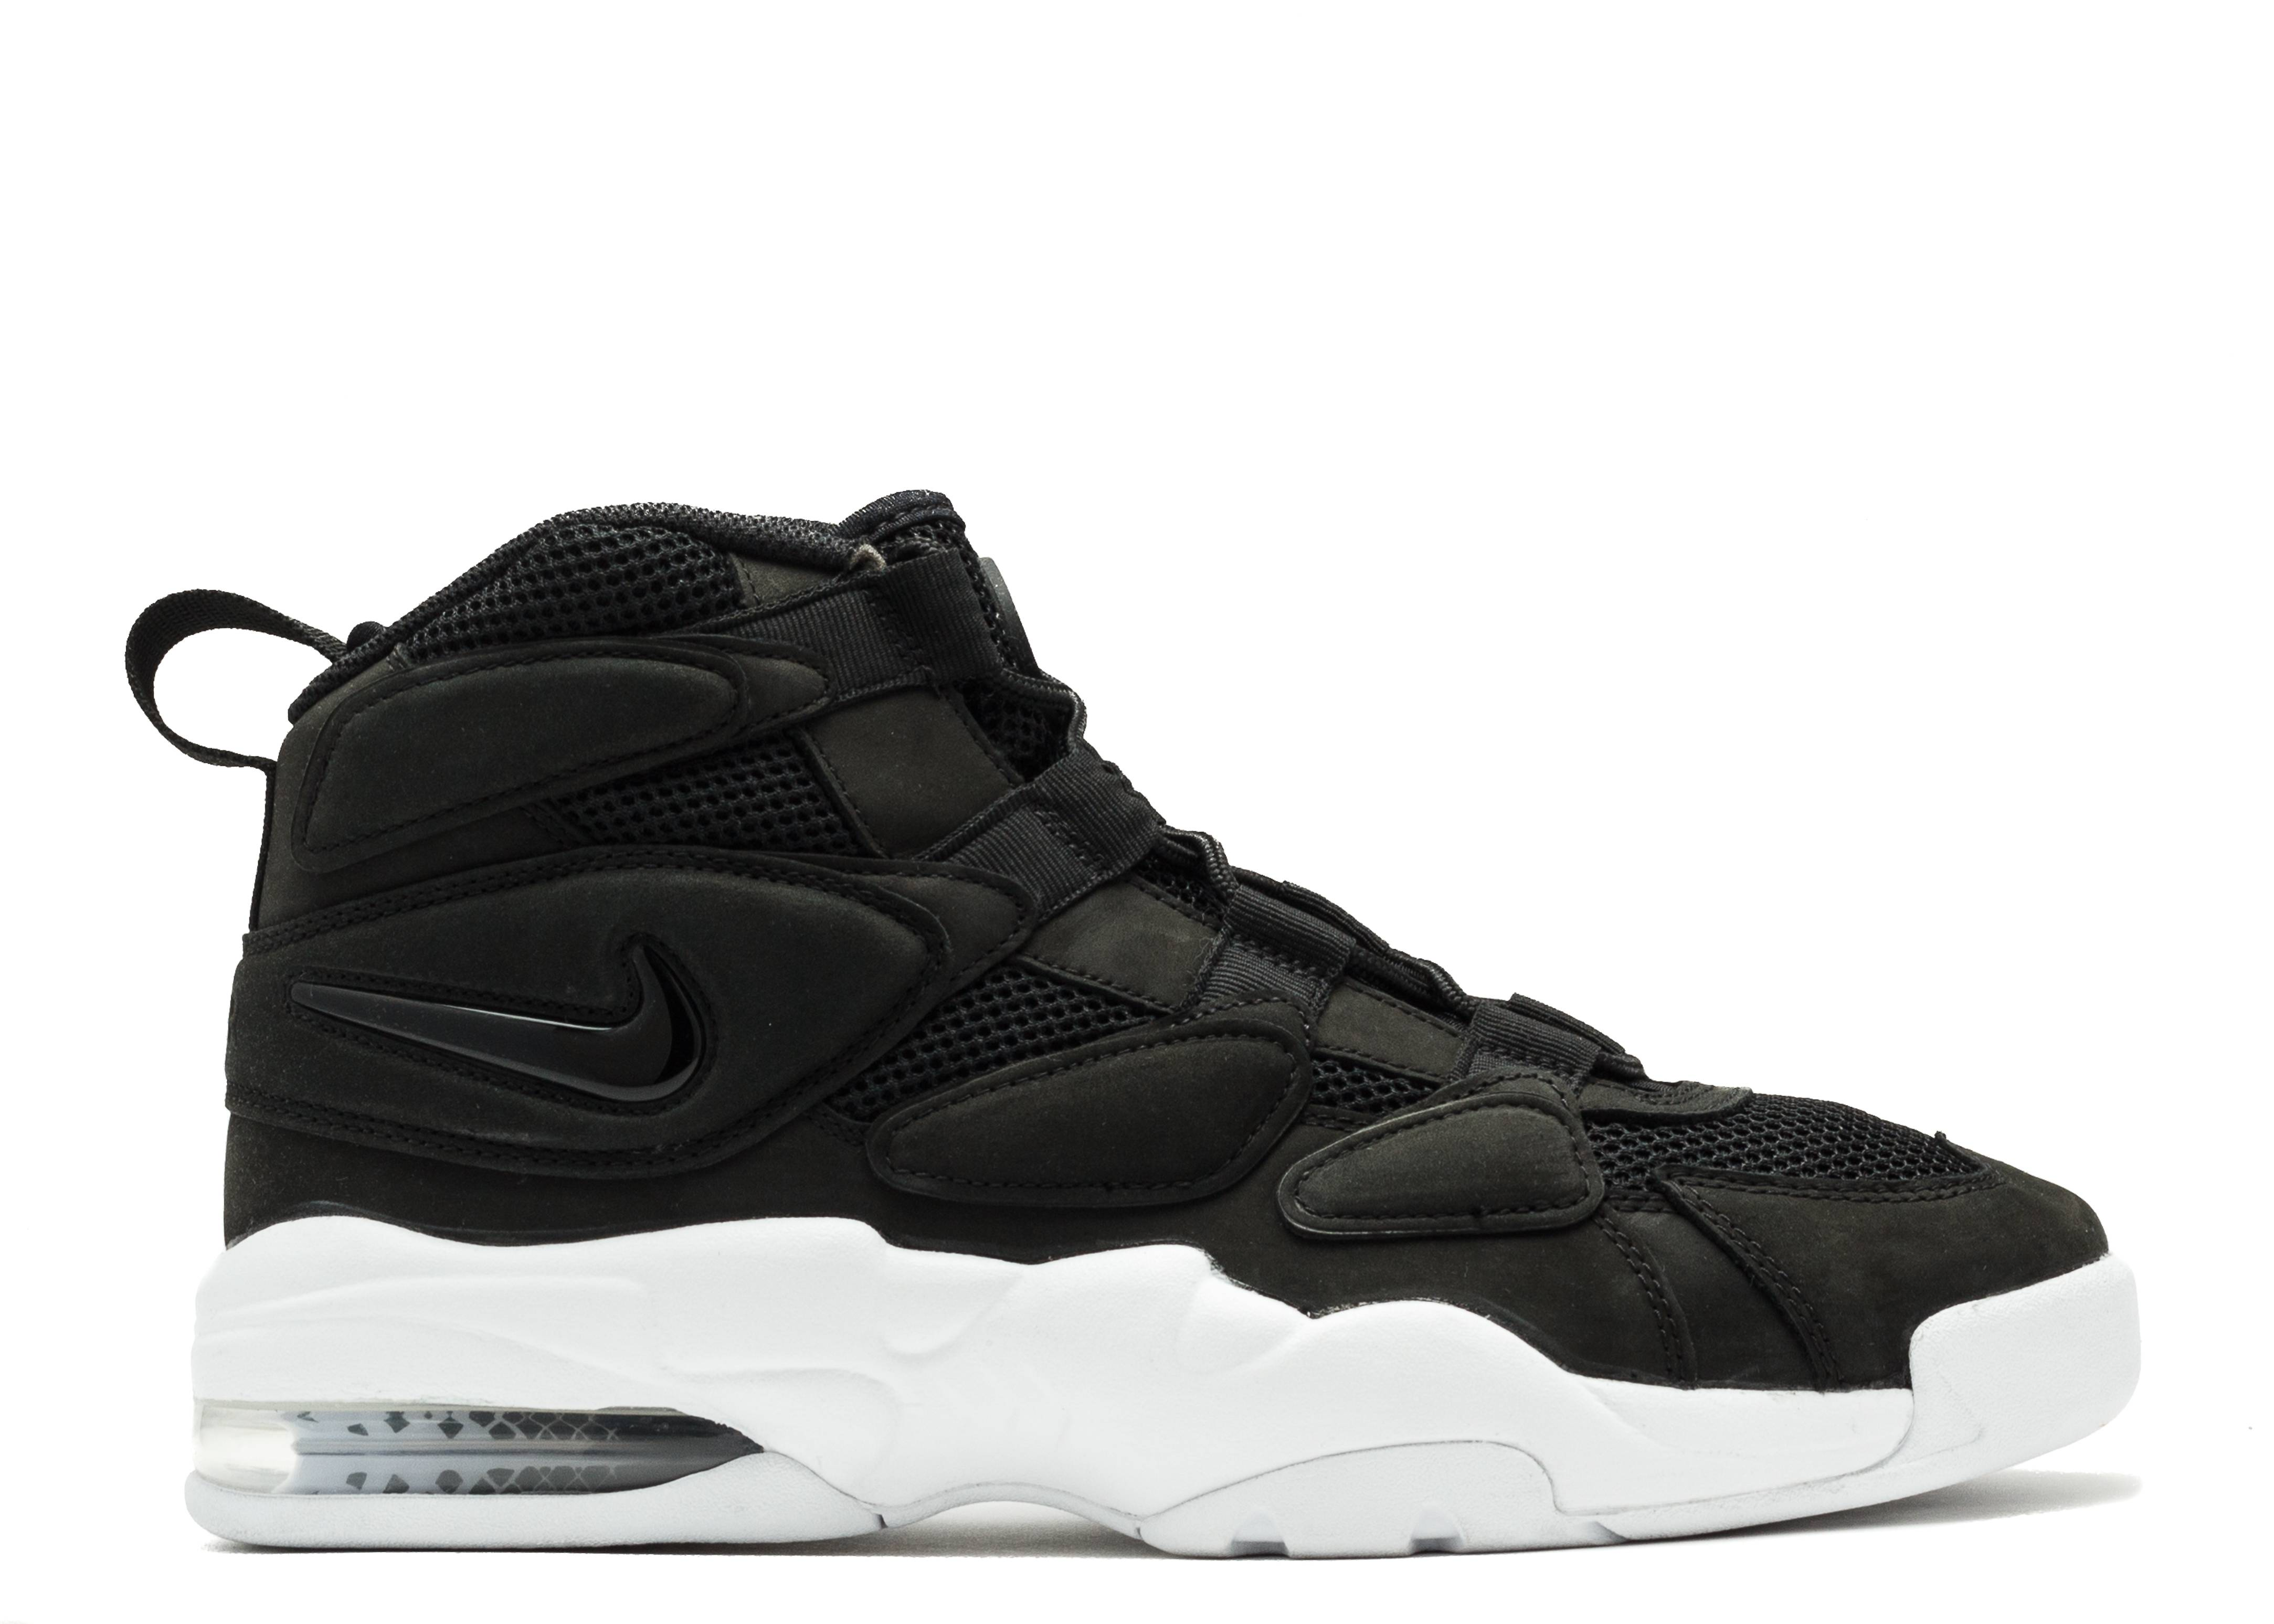 promo code 9be4d fa712 ... coupon code for new style nike. air max 2 uptempo qs e15f1 31607 14a61  e6a80